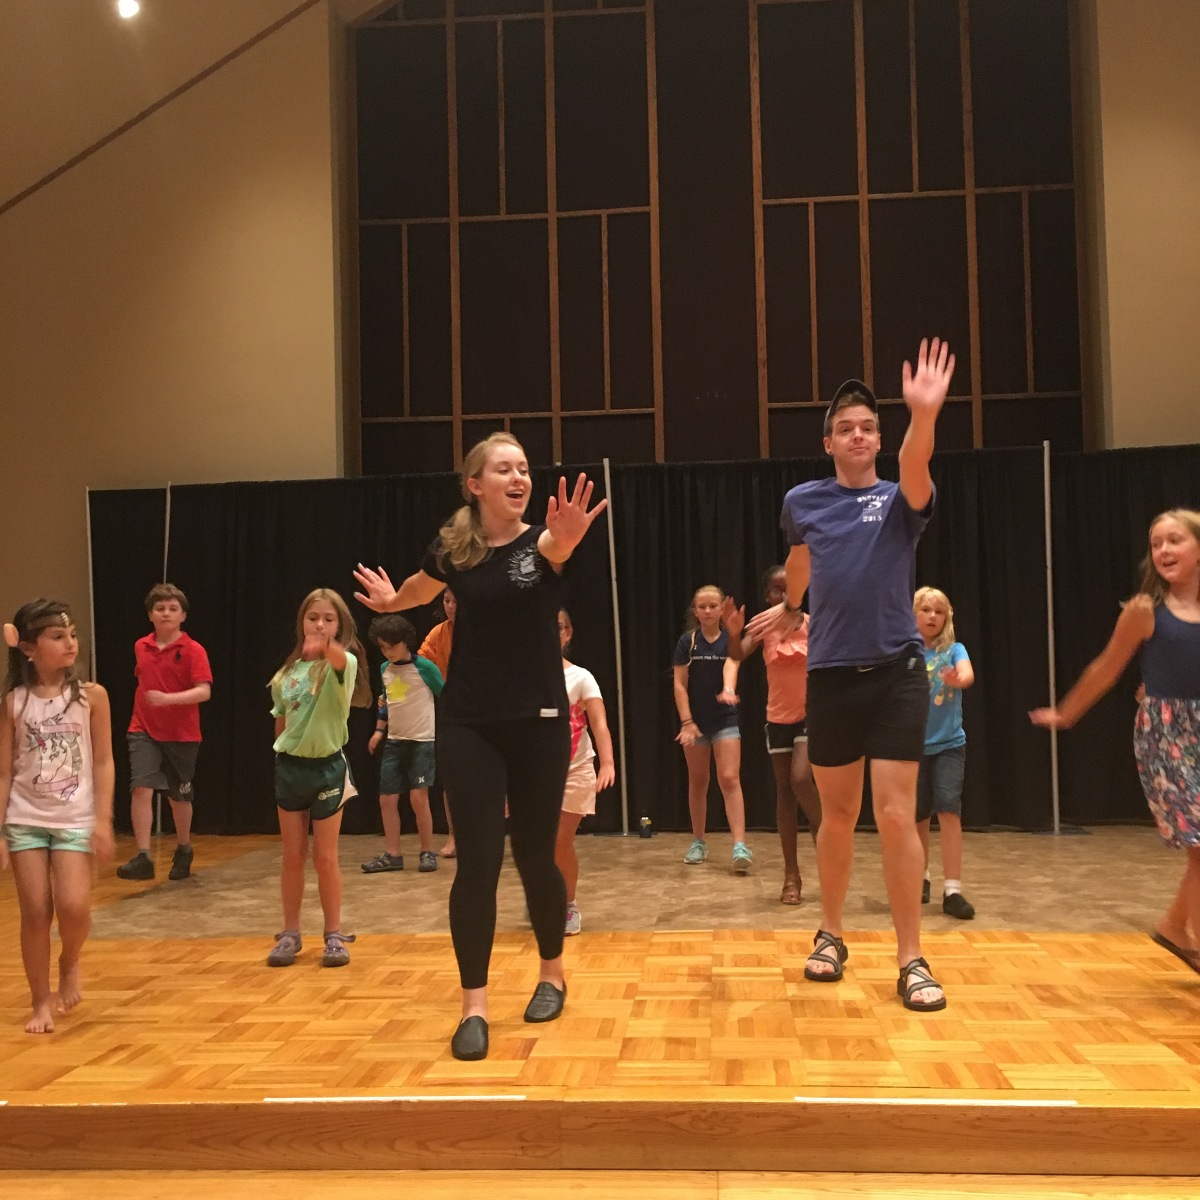 Session 4 Day 5 – Dancing &Devising